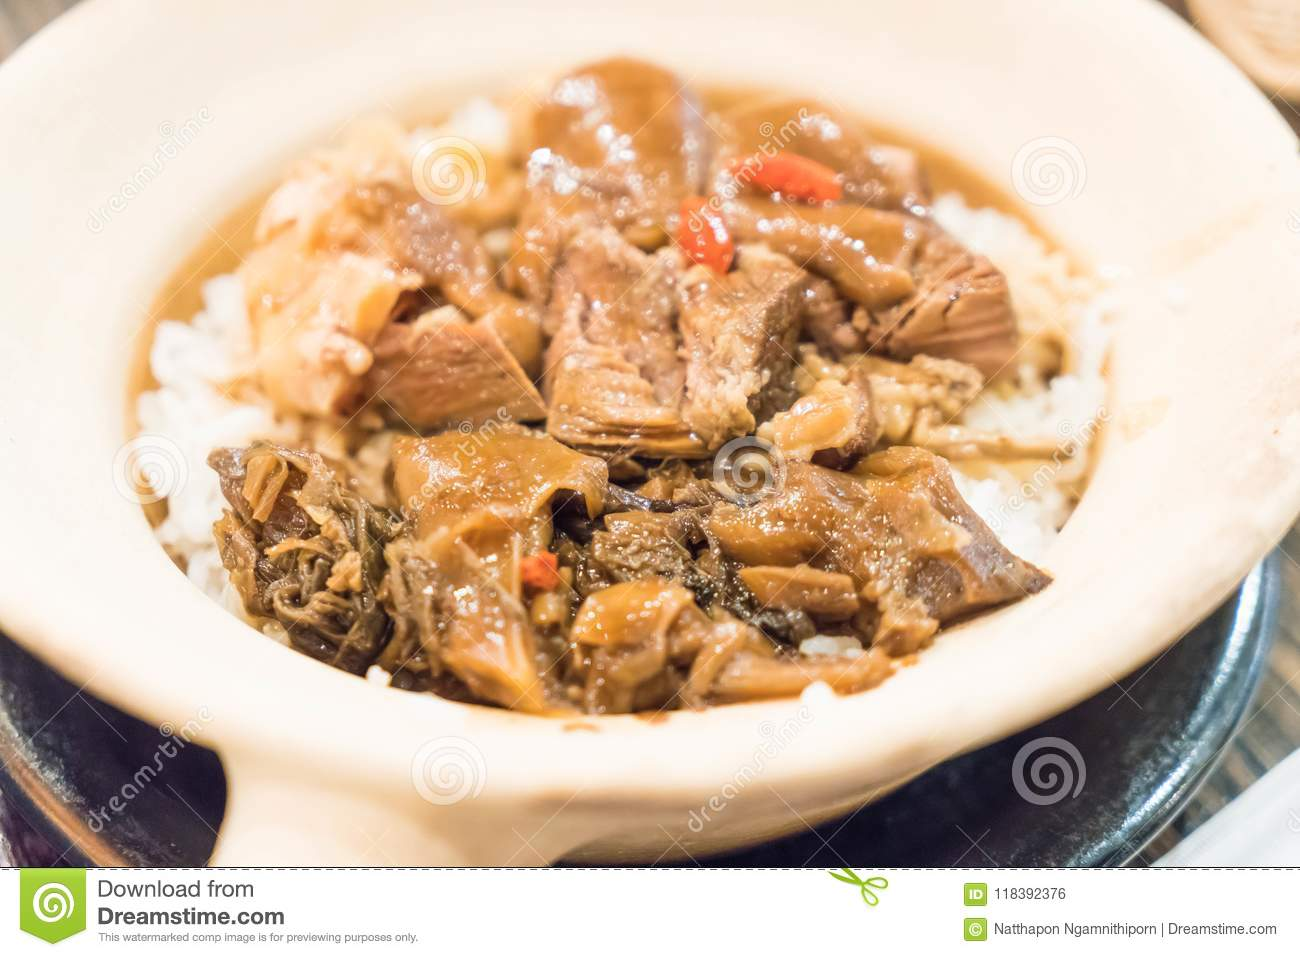 Baked rice with stewed pork leg in clay pot